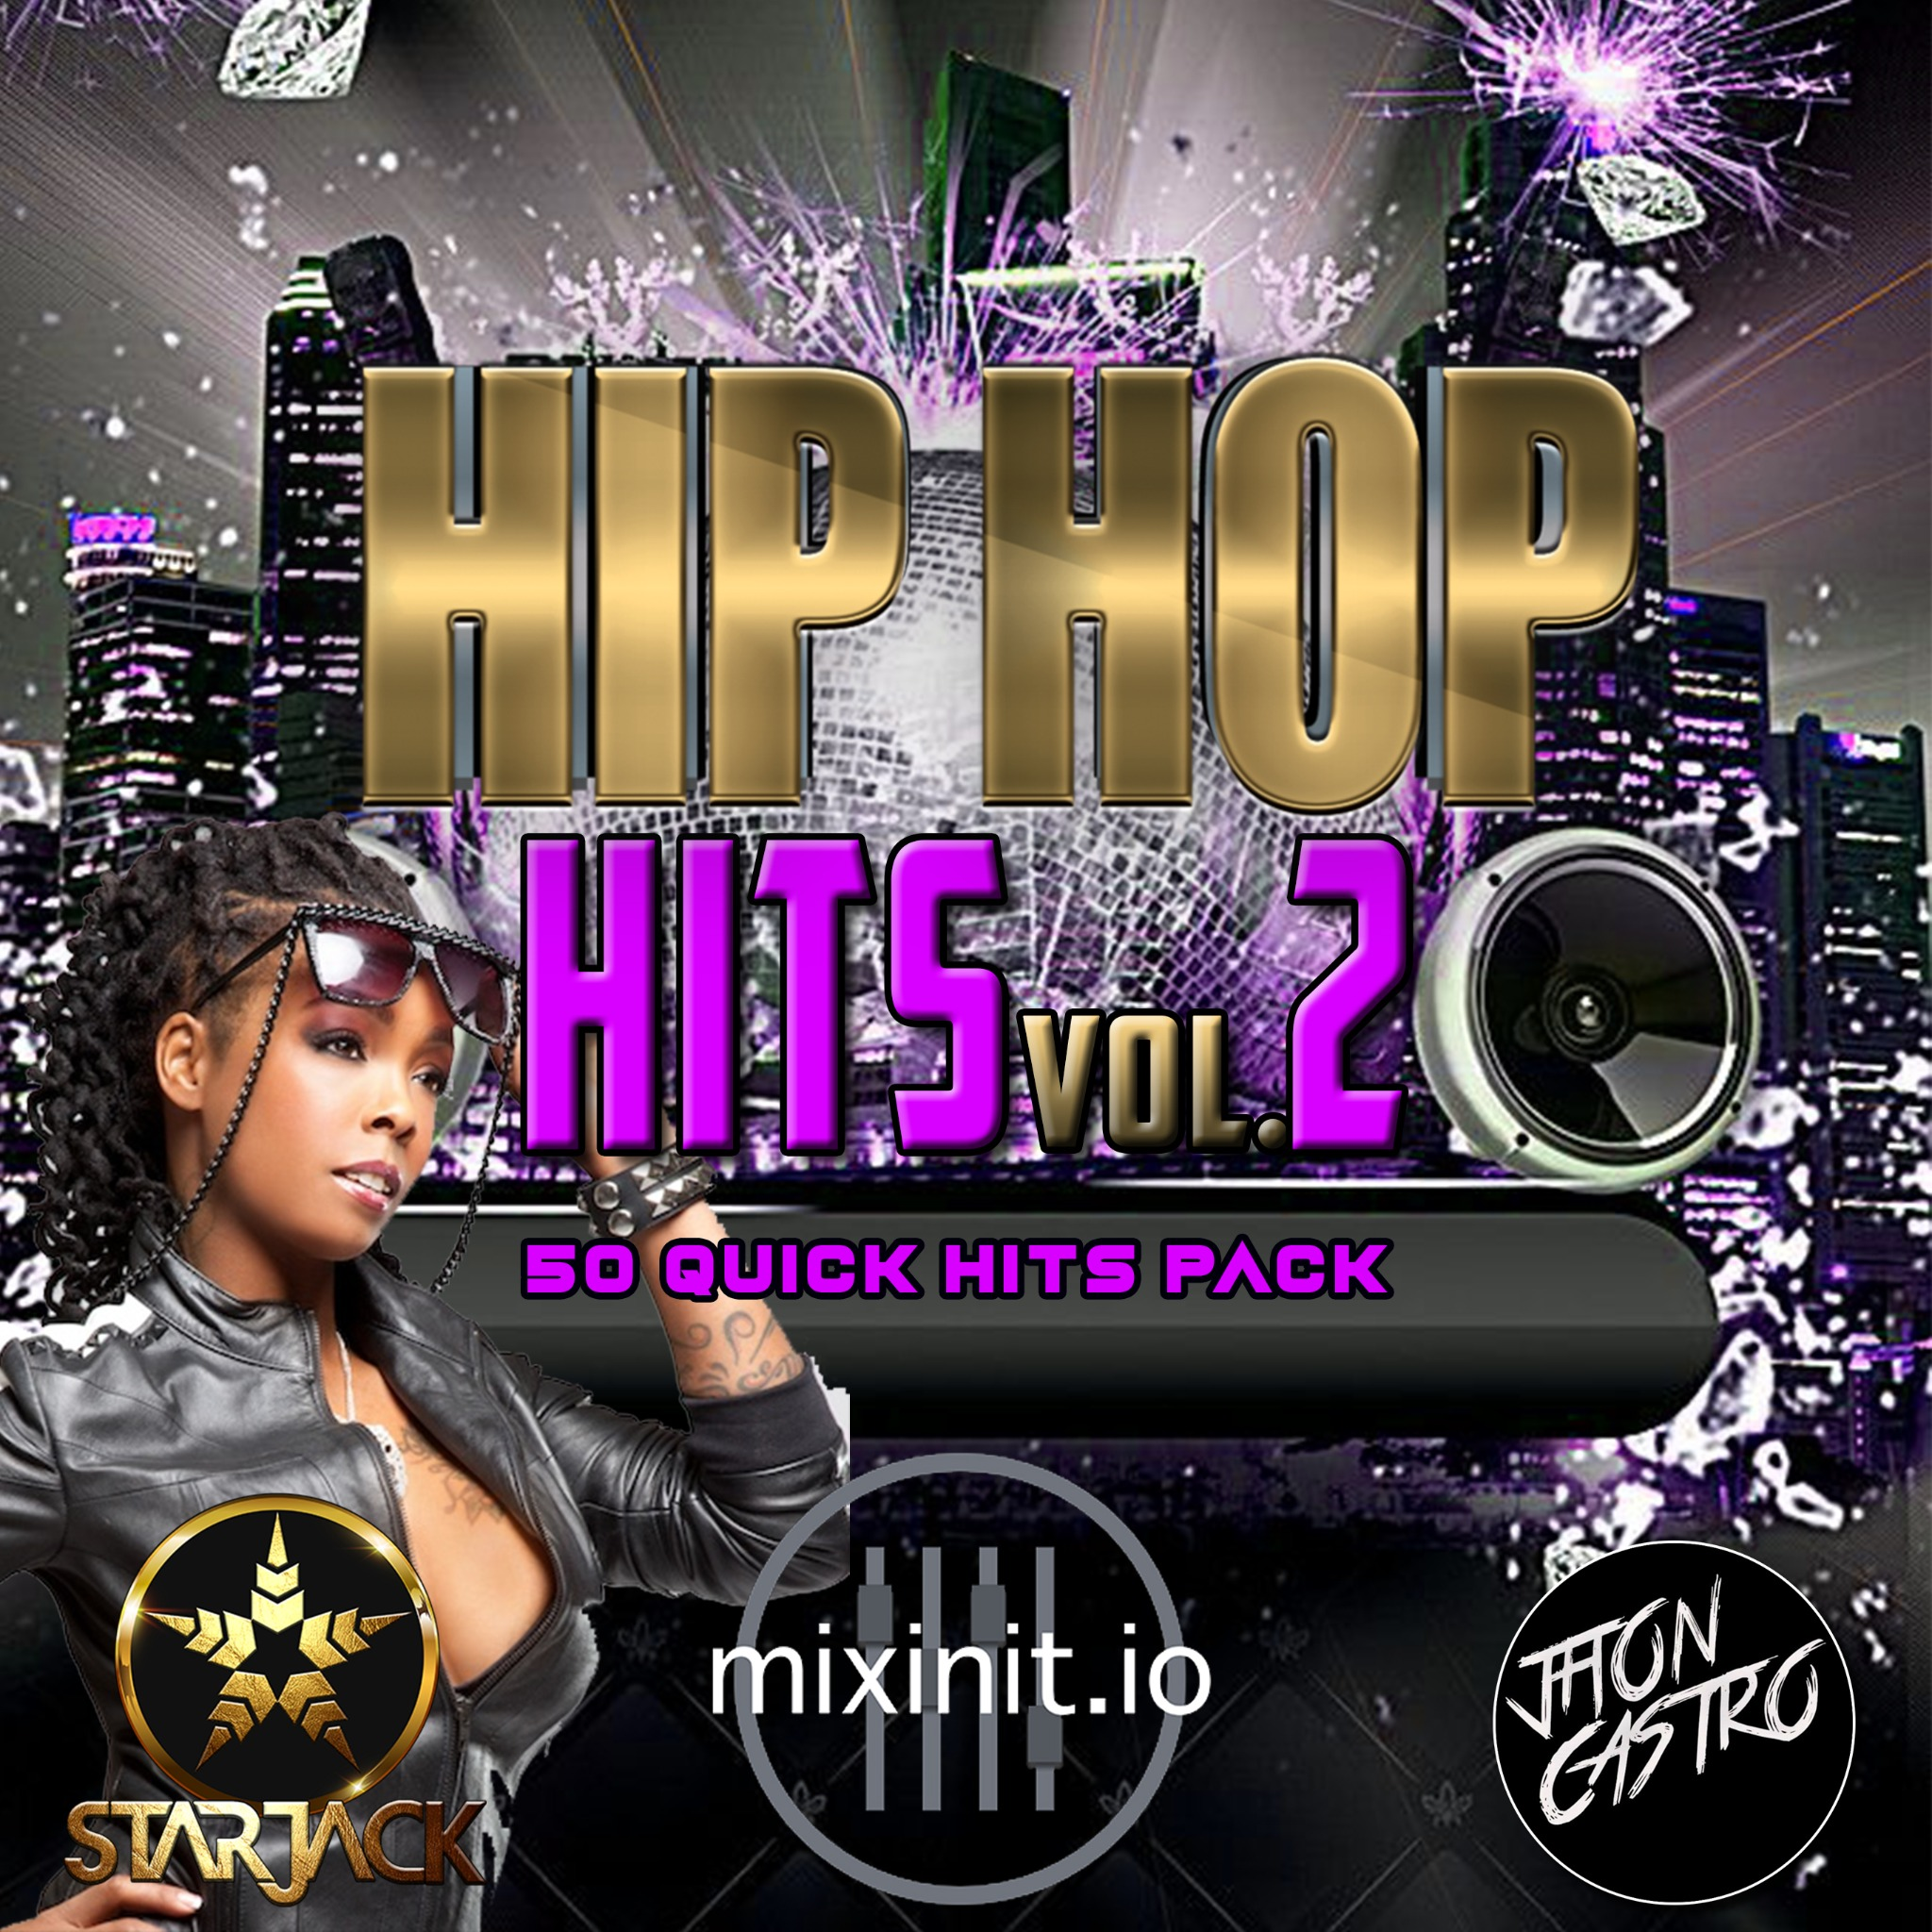 Starjack & Jhon Castro - Hip Hop Hits Vol. 2 (50 Quick Hits)